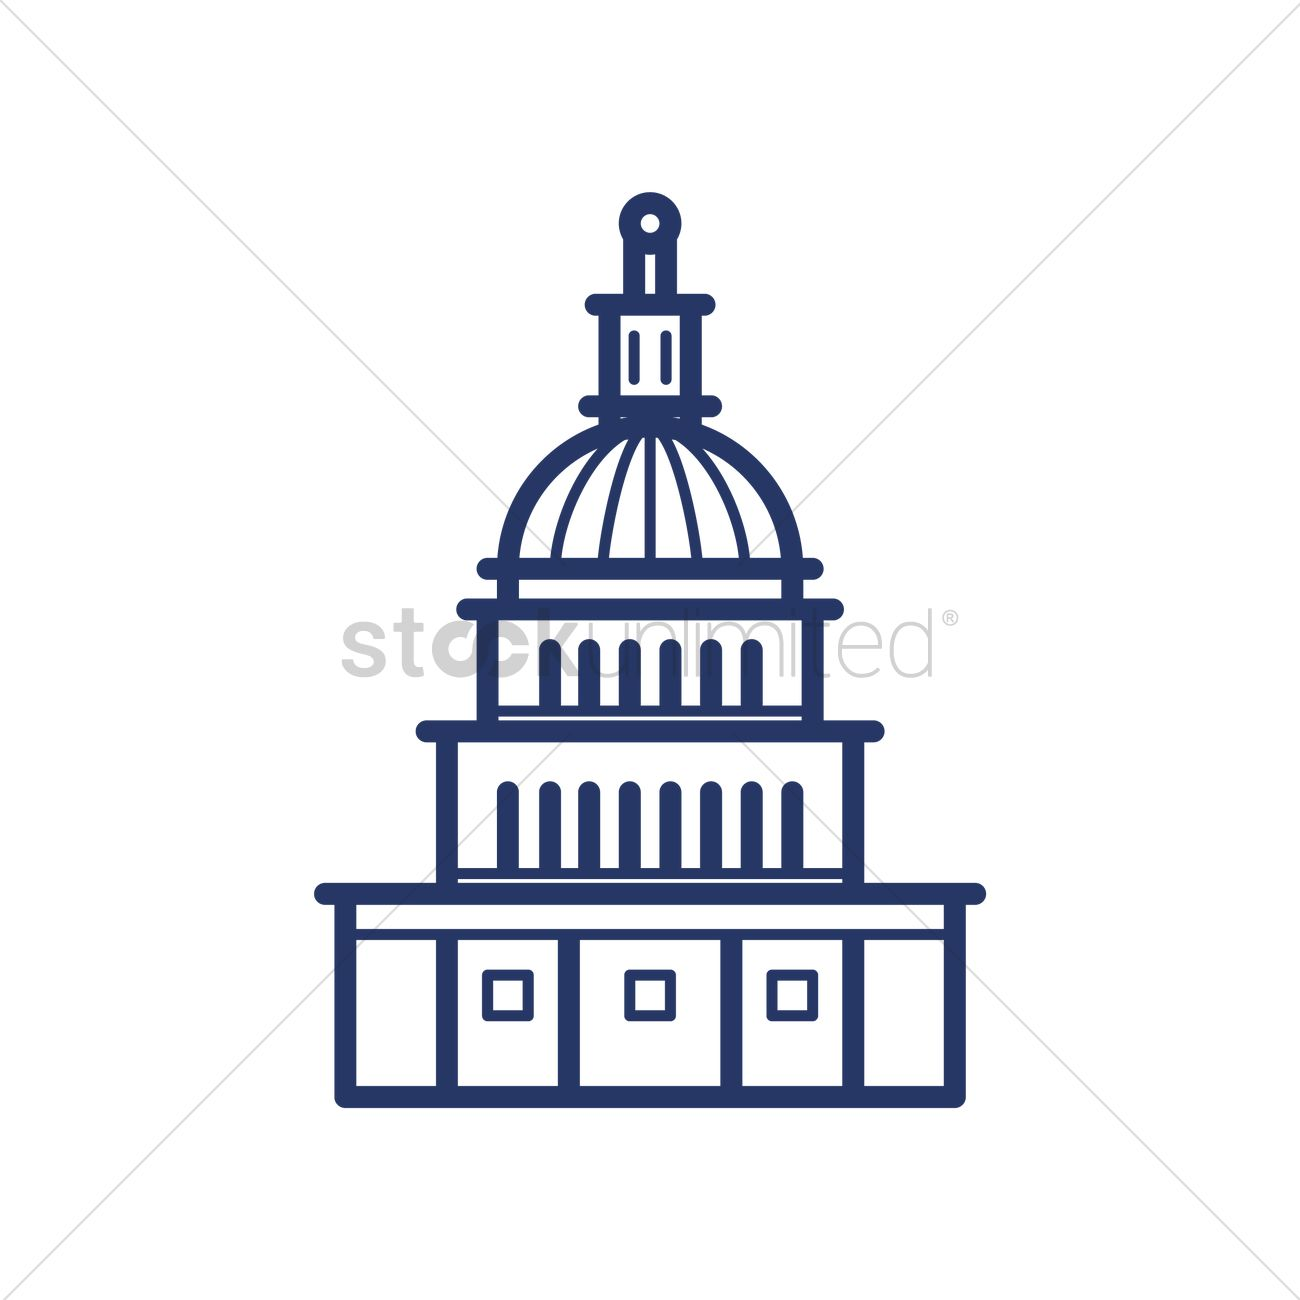 us capitol building vector image 1557989 stockunlimited rh stockunlimited com capitol building vector graphic capitol building vector free